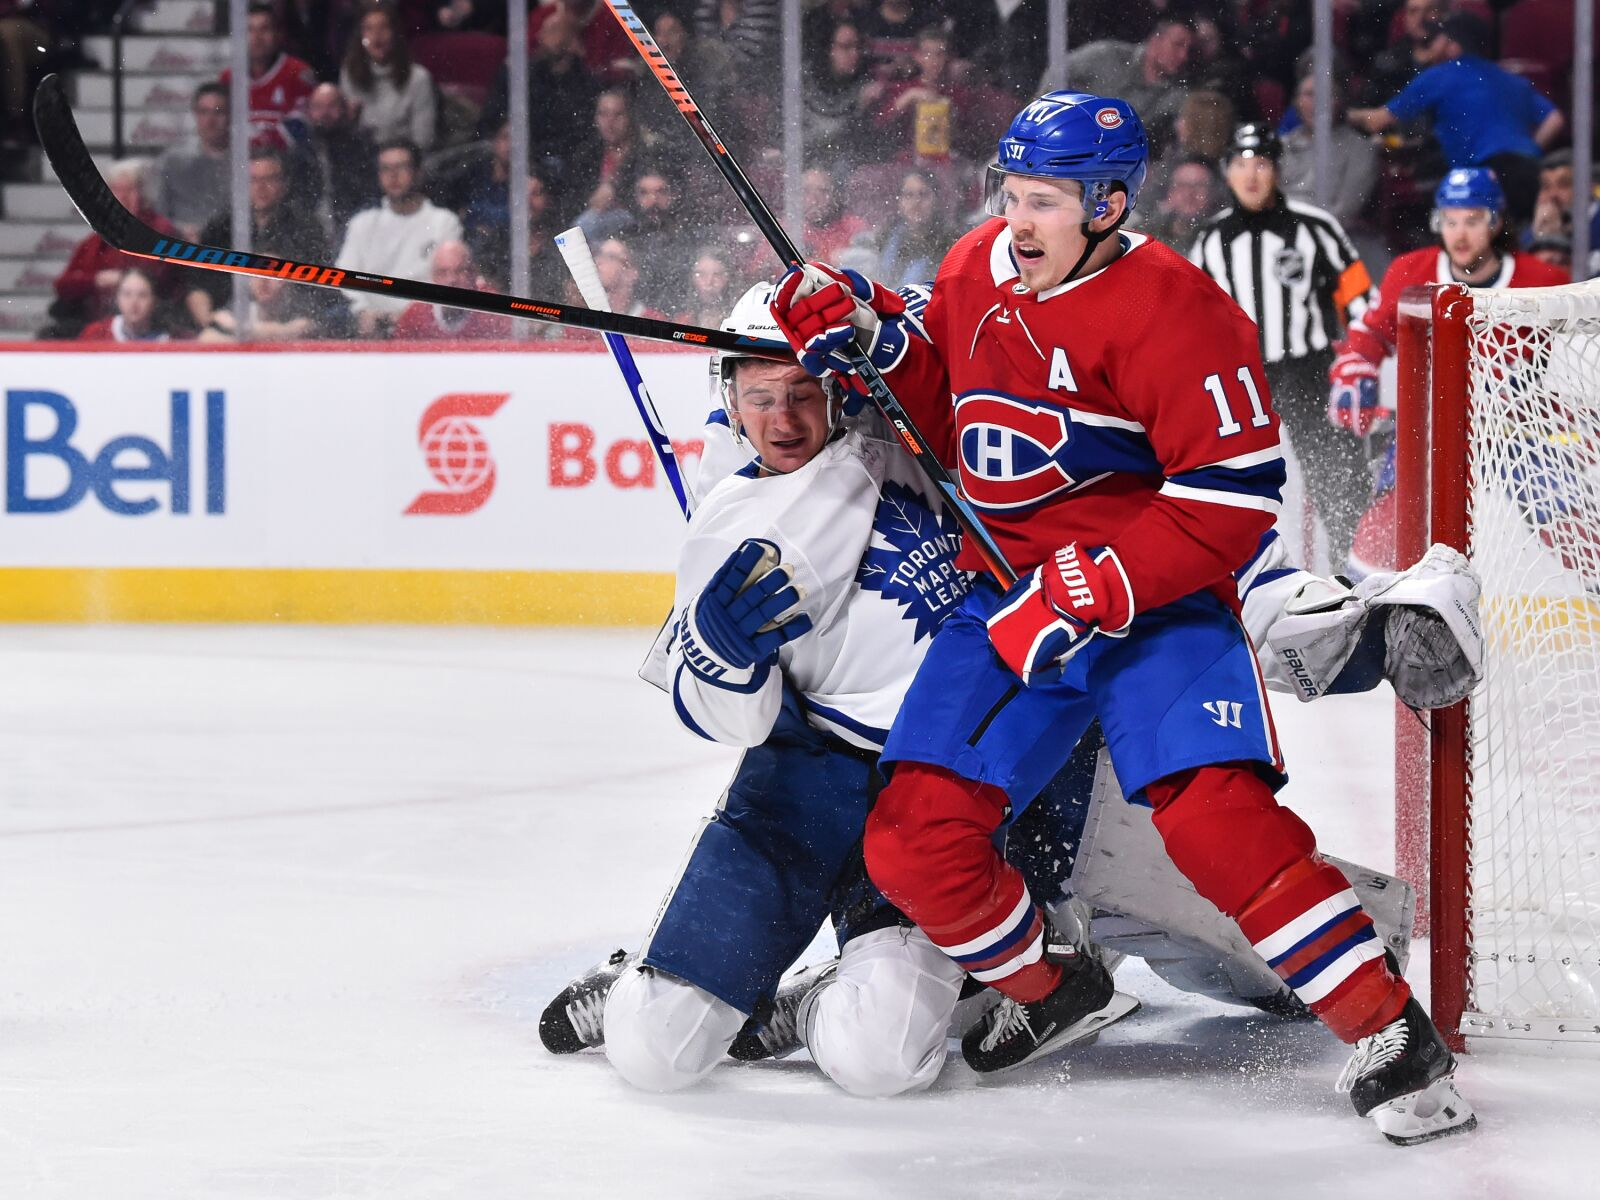 Montreal Canadiens: Brendan Gallagher is among the NHL's best in goals